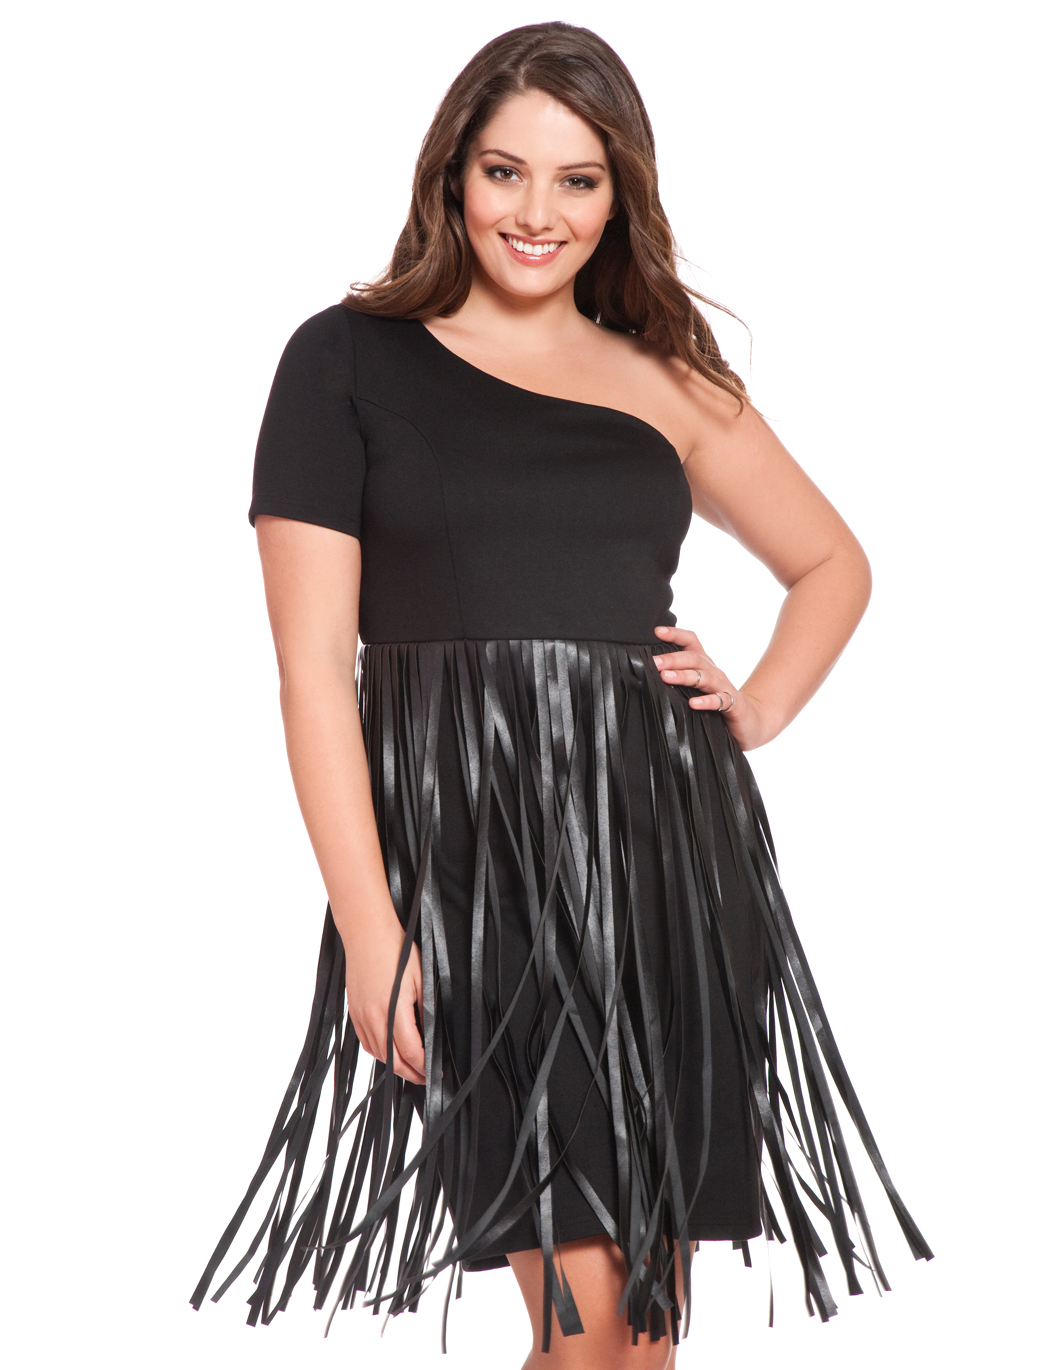 Studio Faux Leather Fringe Dress | Women\'s Plus Size Dresses ...